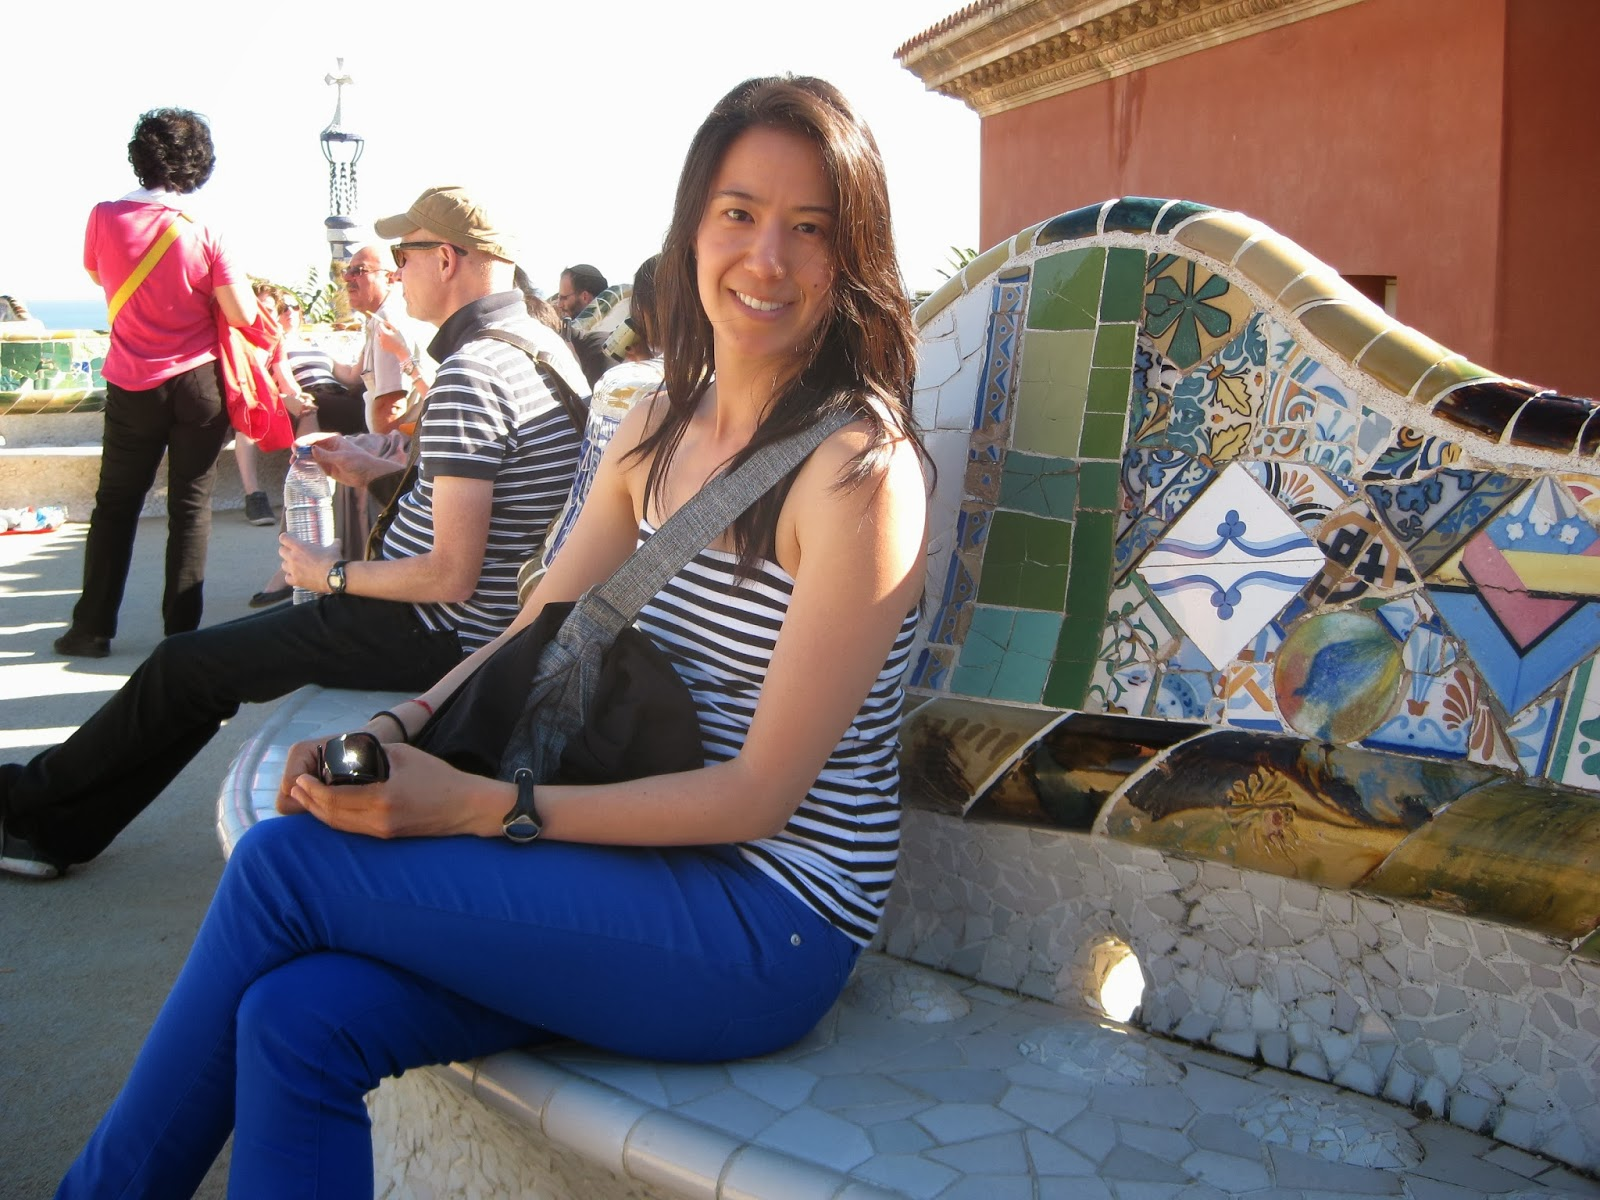 Barcelona - taking a rest on the colorful serpentine bench in Park Guell